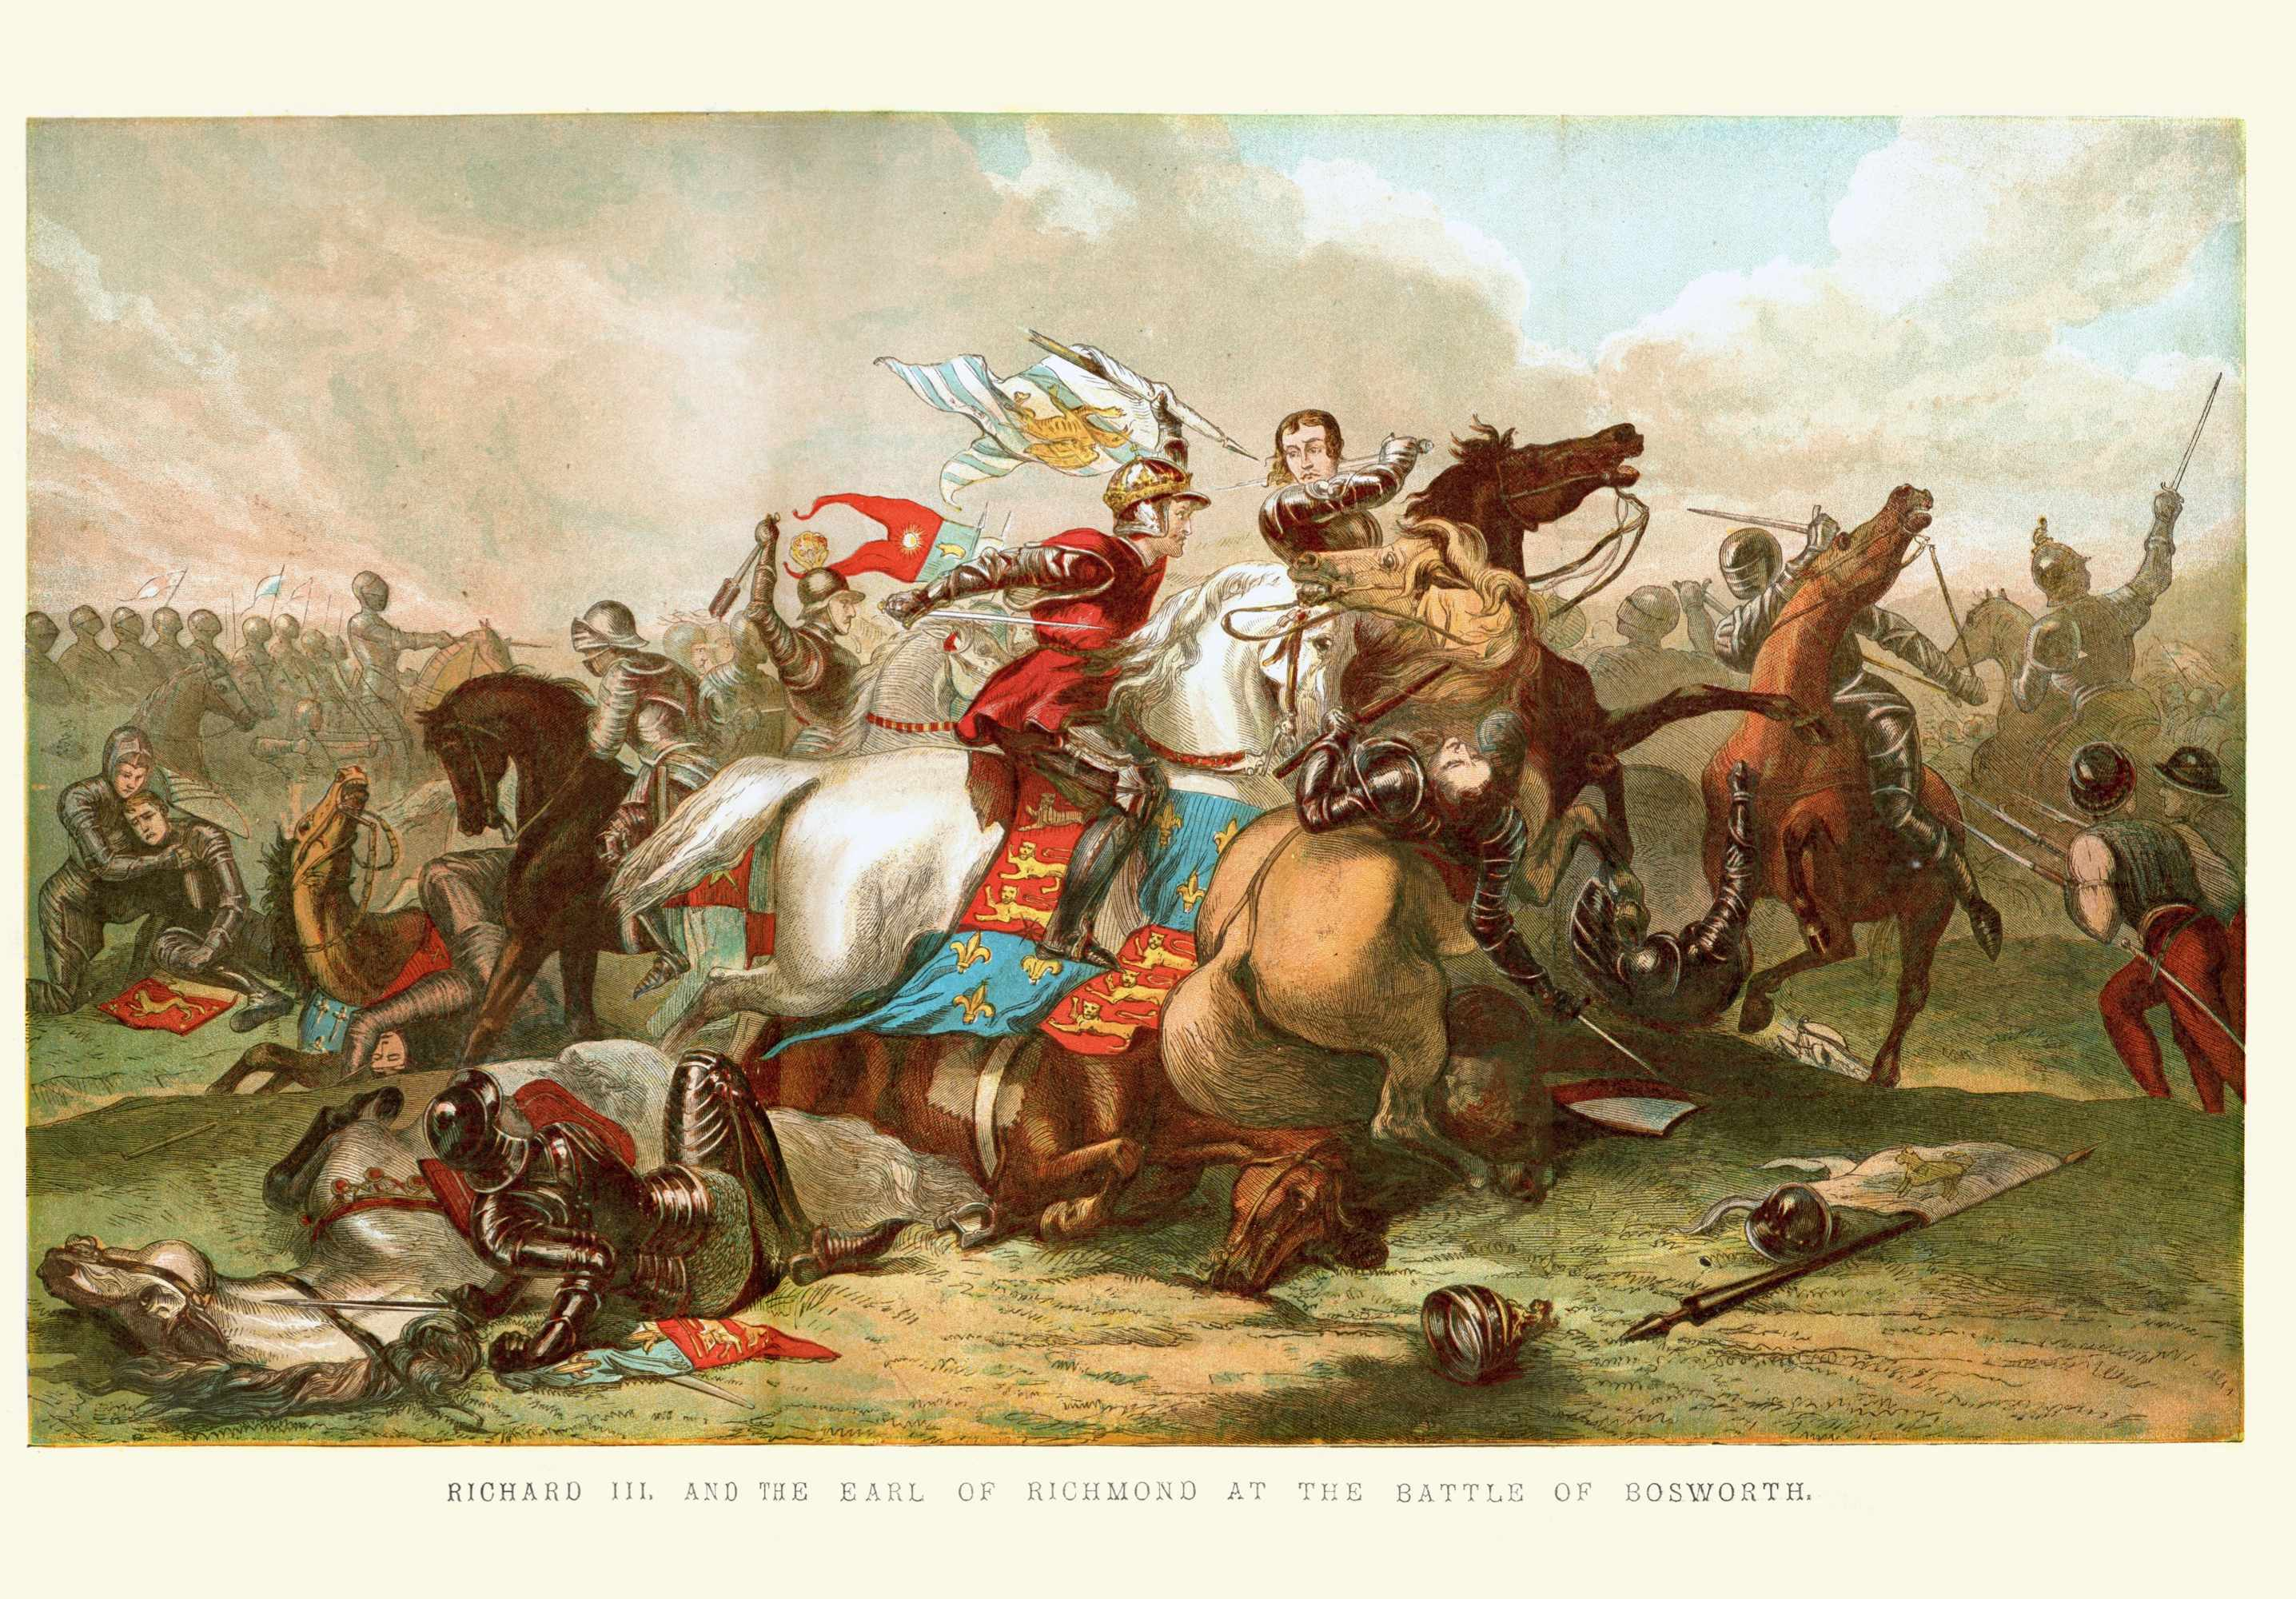 A vintage colour lithograph depicting King Richard III at the battle of Bosworth. The battle of Bosworth (or Bosworth Field) was the last significant battle of the Wars of the Roses, the civil war between the Houses of Lancaster and York. (Photo by Getty Images)